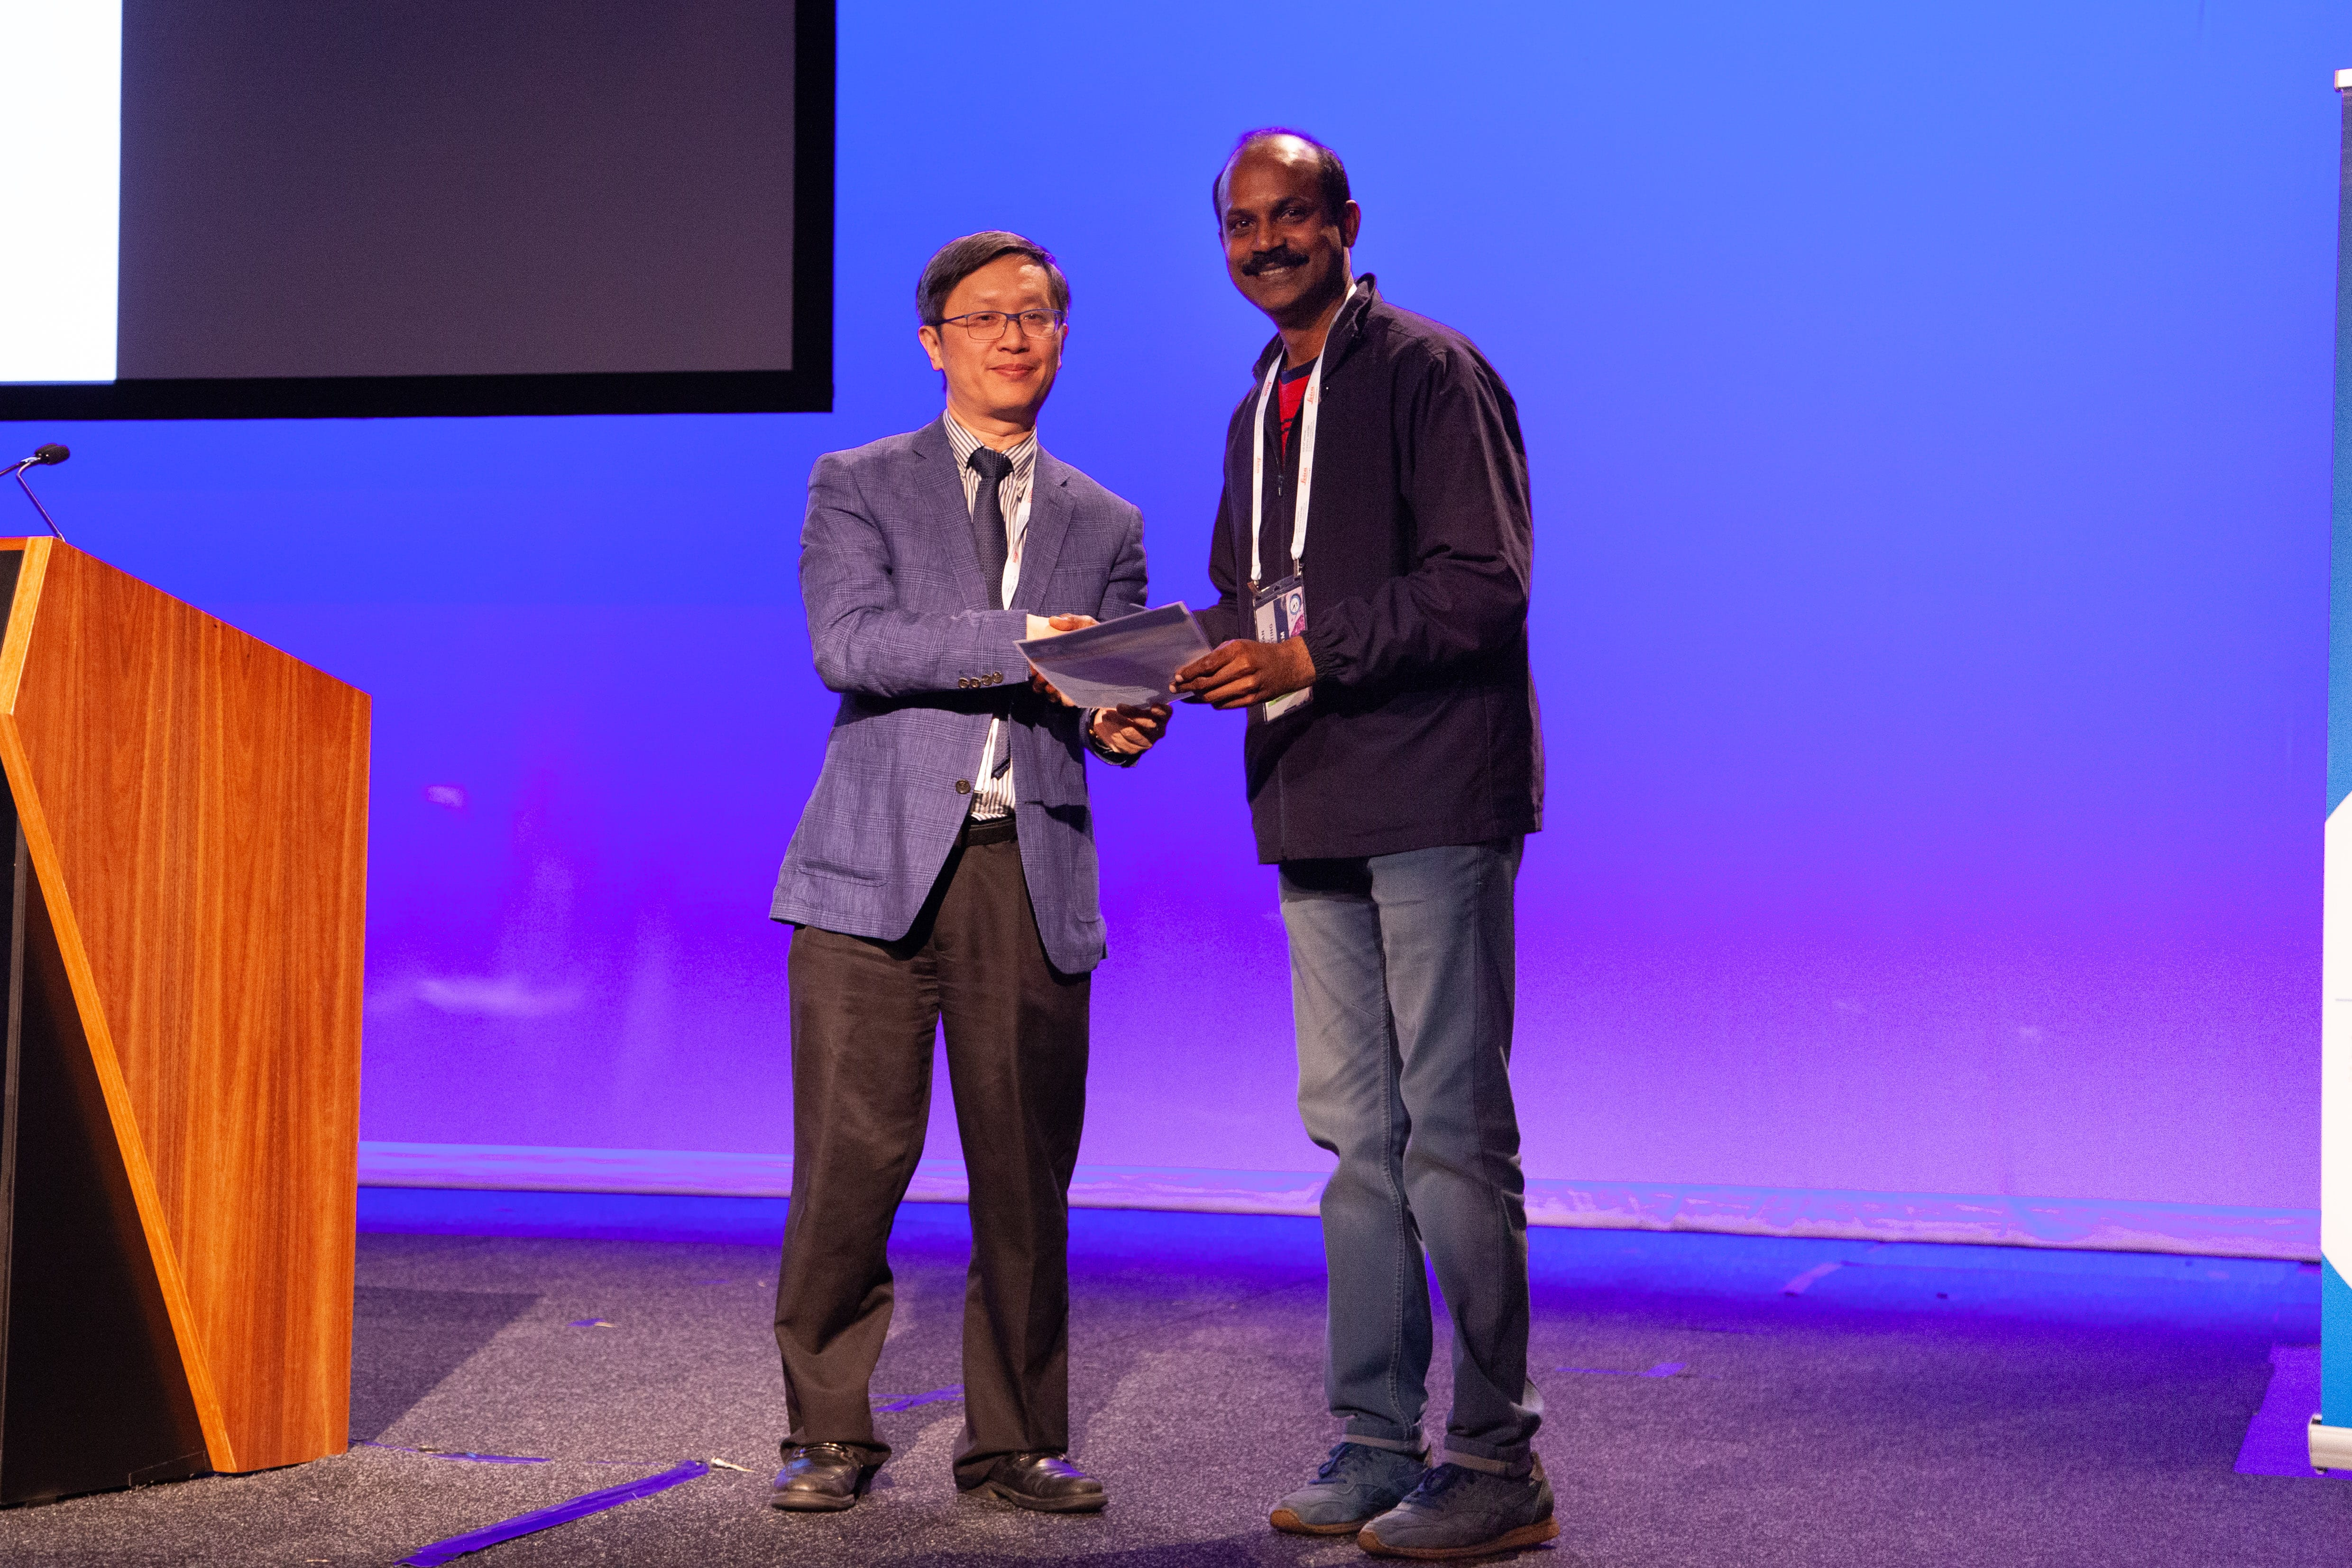 Alfred Lam presenting 2nd Commentation Prize Winner in Abstract Poster Pathologist Category  (Sorsiah Mansor accepted by Philip Radin)